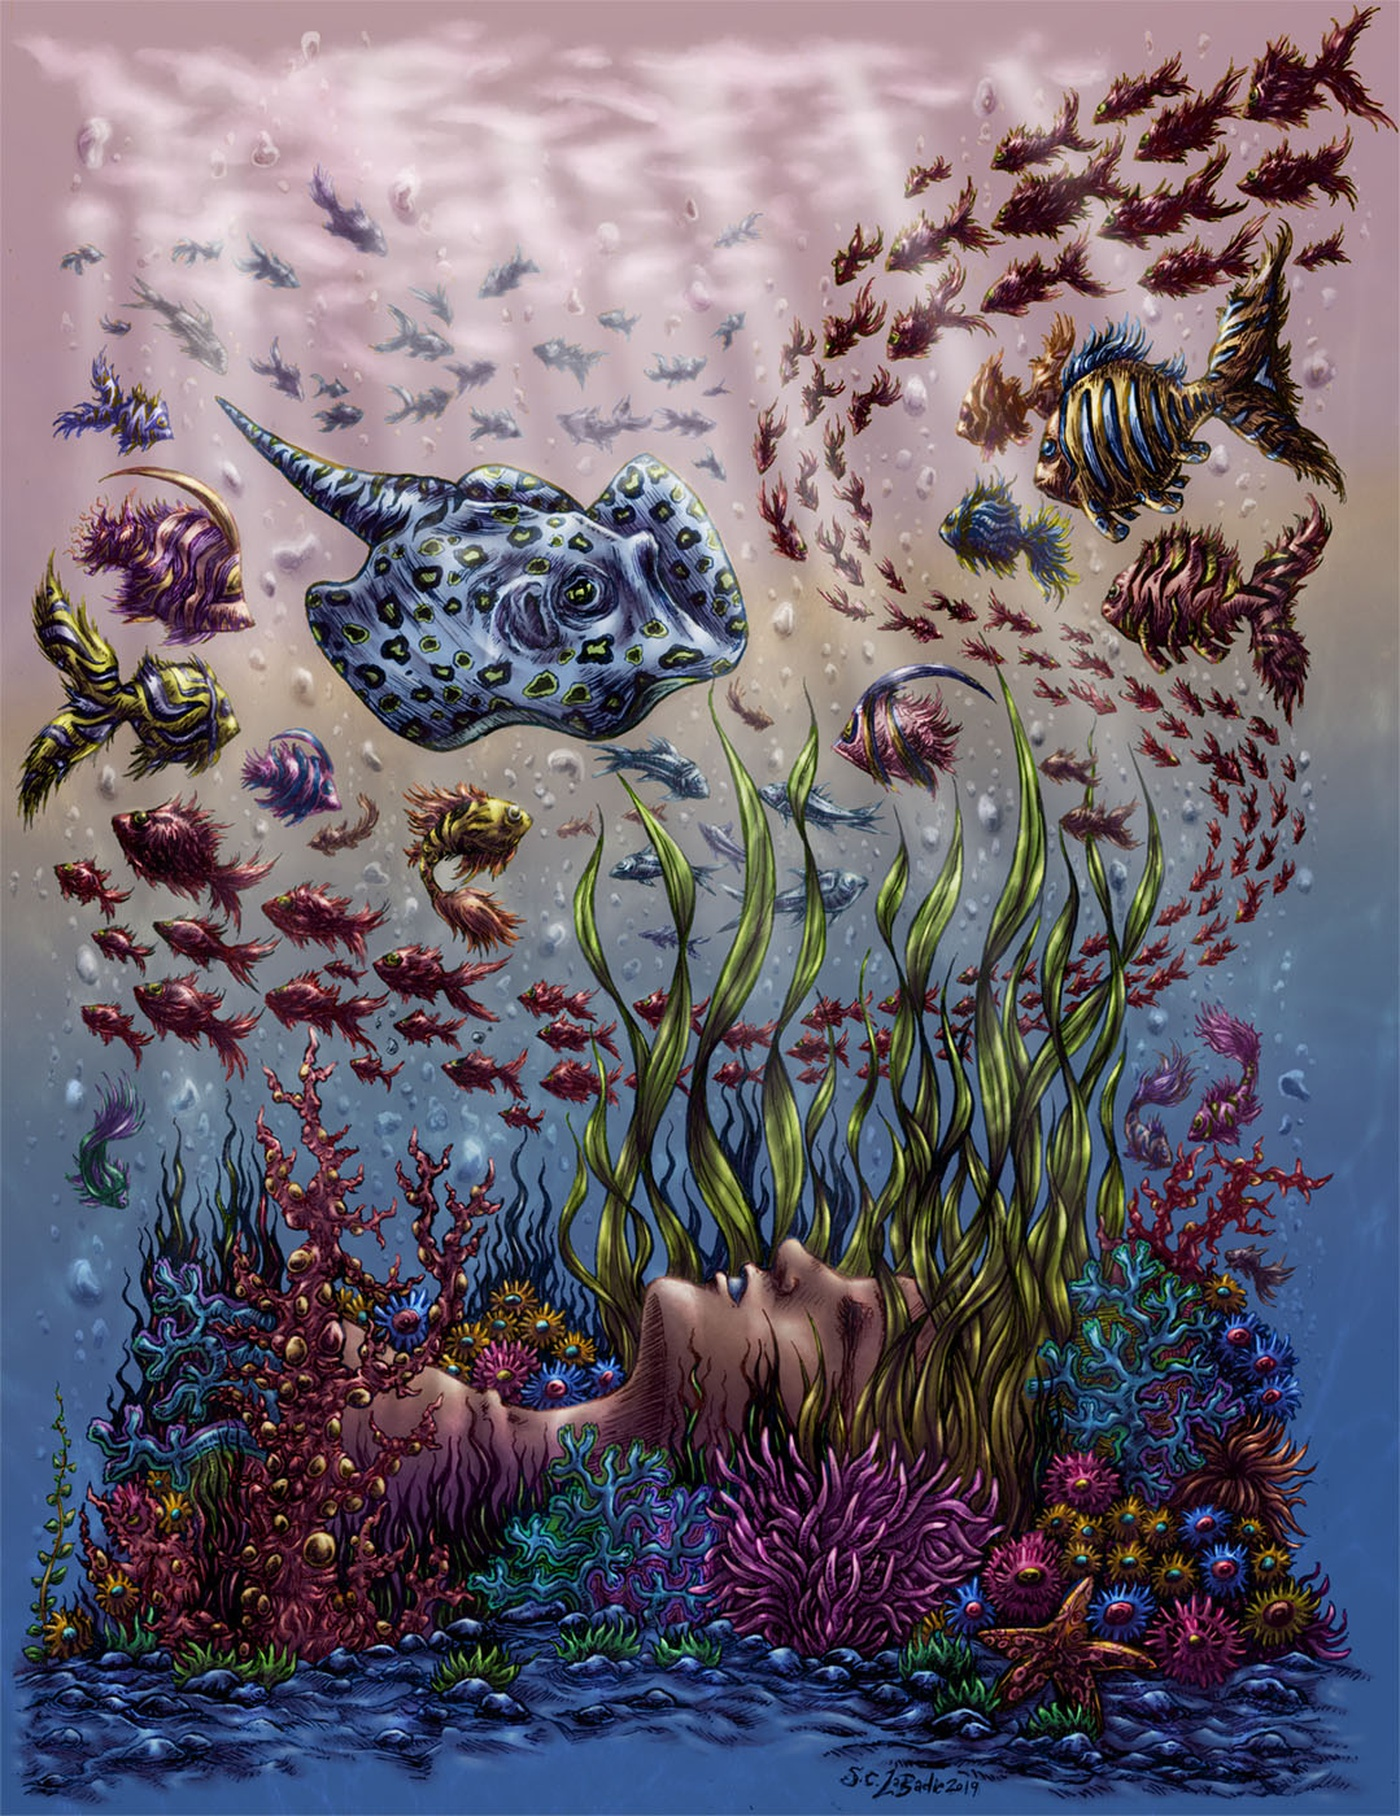 Simon LaBadie Chartrand - Underwater - Drowning in Beauty